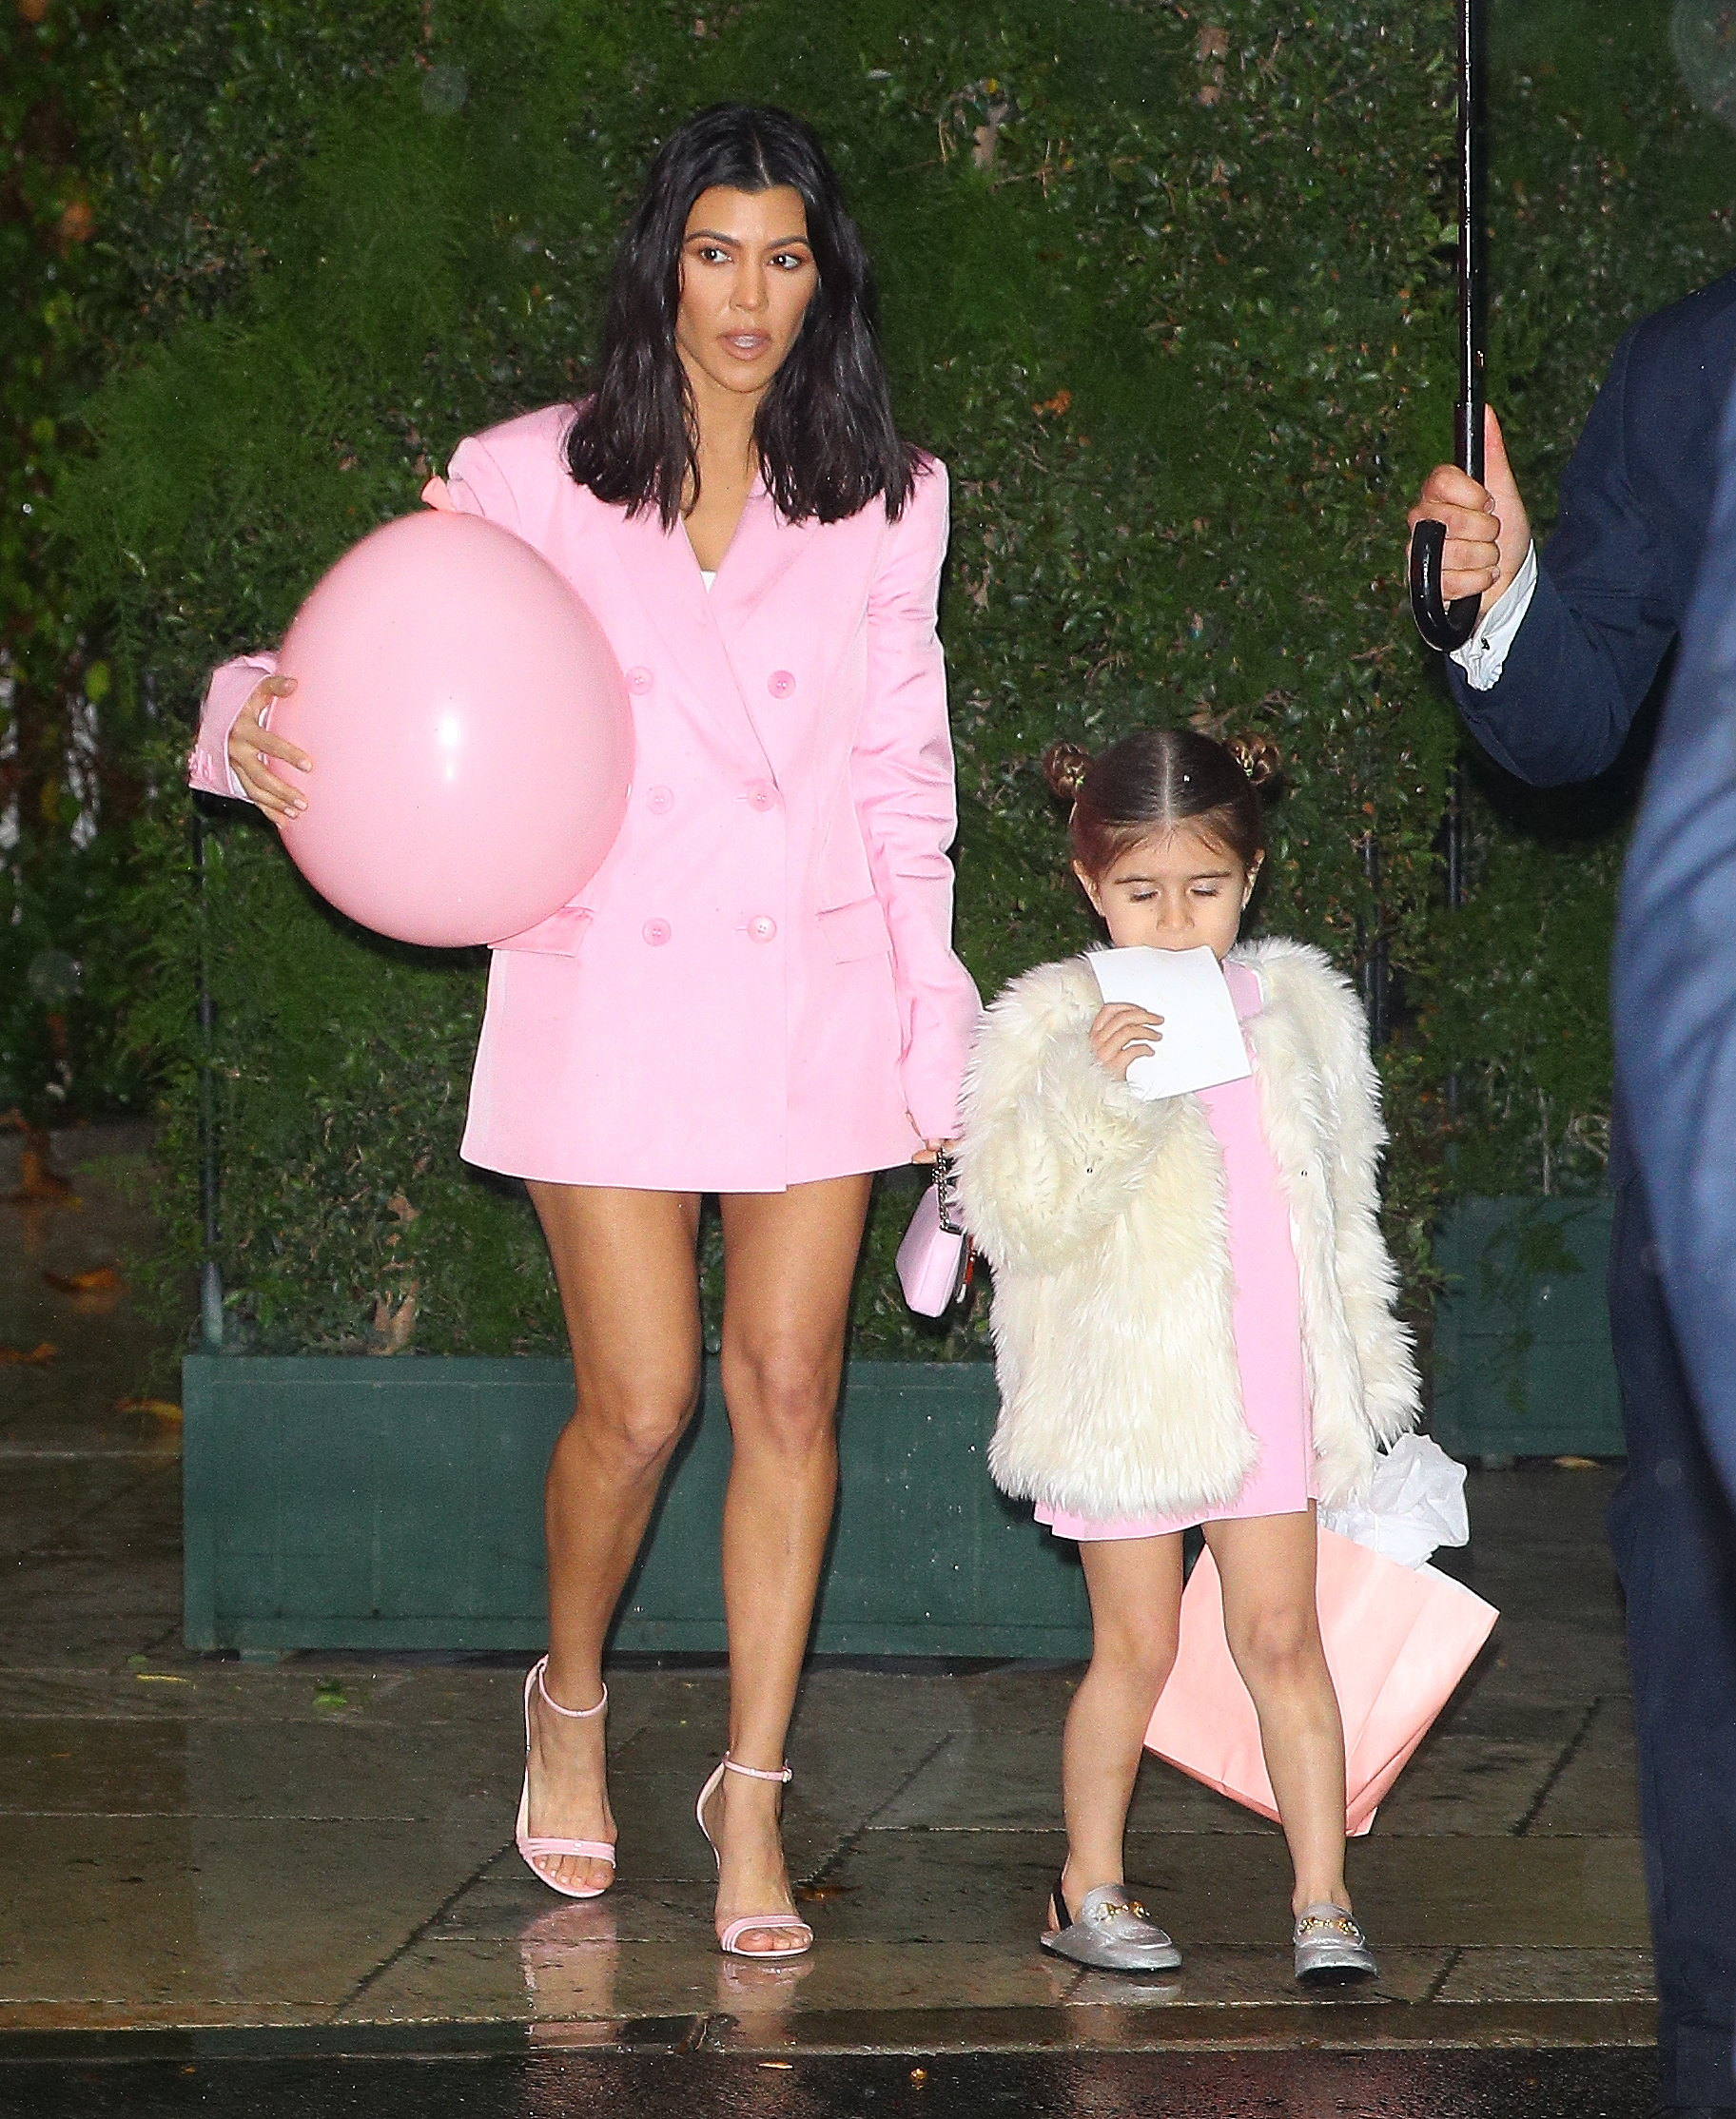 kourtney Kardashian and Penelope leave khloe kardashian baby shower in Los Angeles, CA <P> Pictured: kourtney Kardashian and Penelope leave khloe kardashian baby shower in Los Angeles, CA <B>Ref: SPL1669954  100318  </B><BR/> Picture by: Pap Nation / Splash News<BR/> </P><P> <B>Splash News and Pictures</B><BR/> Los Angeles:310-821-2666<BR/> New York:212-619-2666<BR/> London:870-934-2666<BR/> <span id=